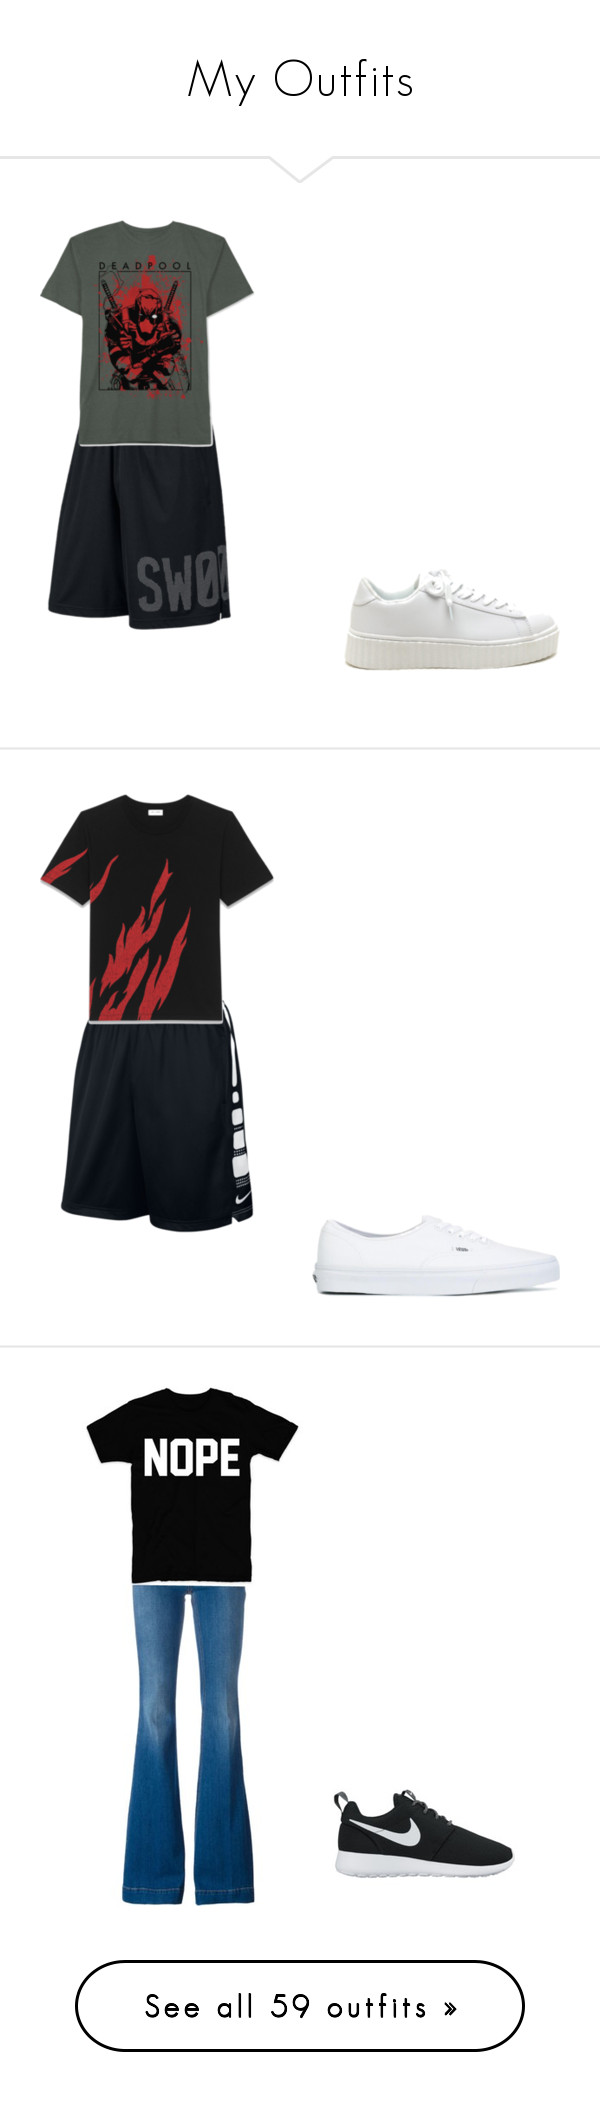 """""""My Outfits"""" by sierra-ivy on Polyvore featuring NIKE, JEM, Vans, Yves Saint Laurent, STELLA McCARTNEY, Hollister Co., Gucci, Dr. Scholl's, Rask and J.Crew"""